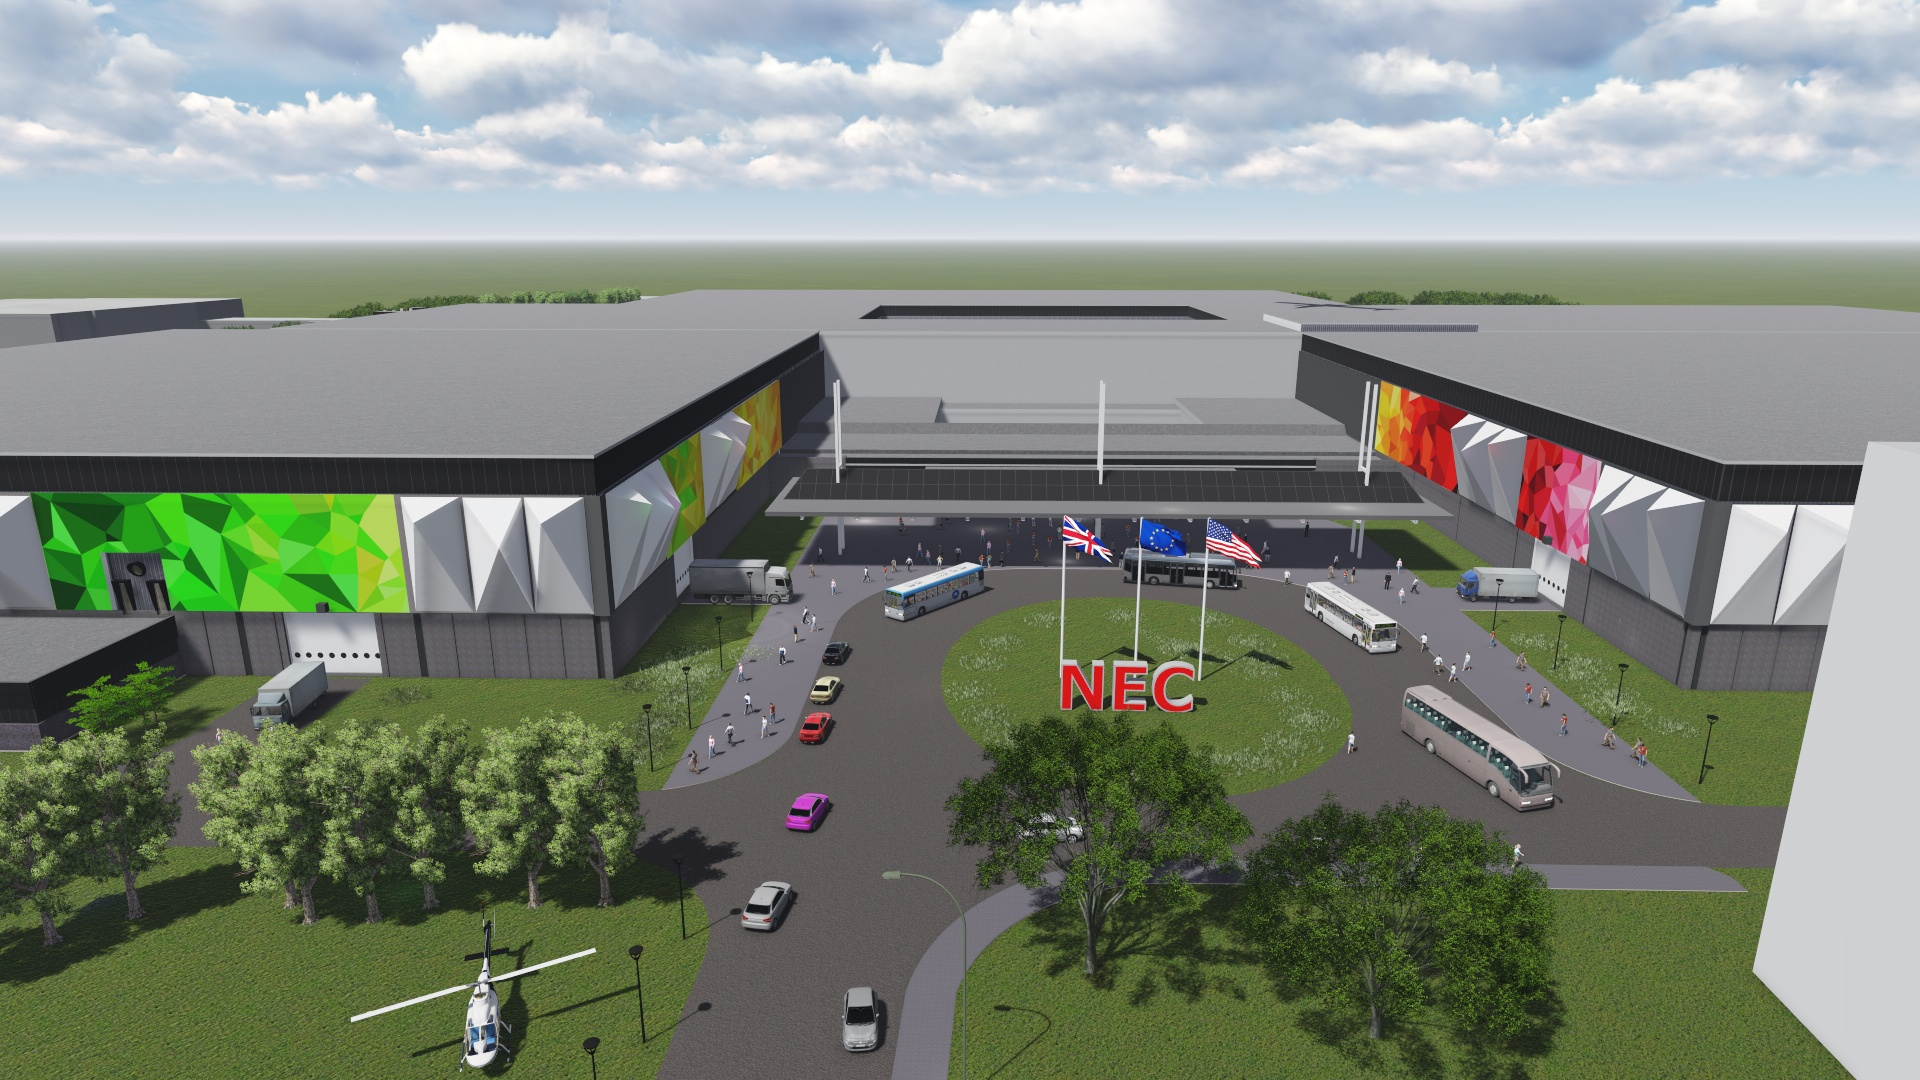 2018-07/1531133860_artist-impression-for-completed-4.5m-transformation-of-the-nec